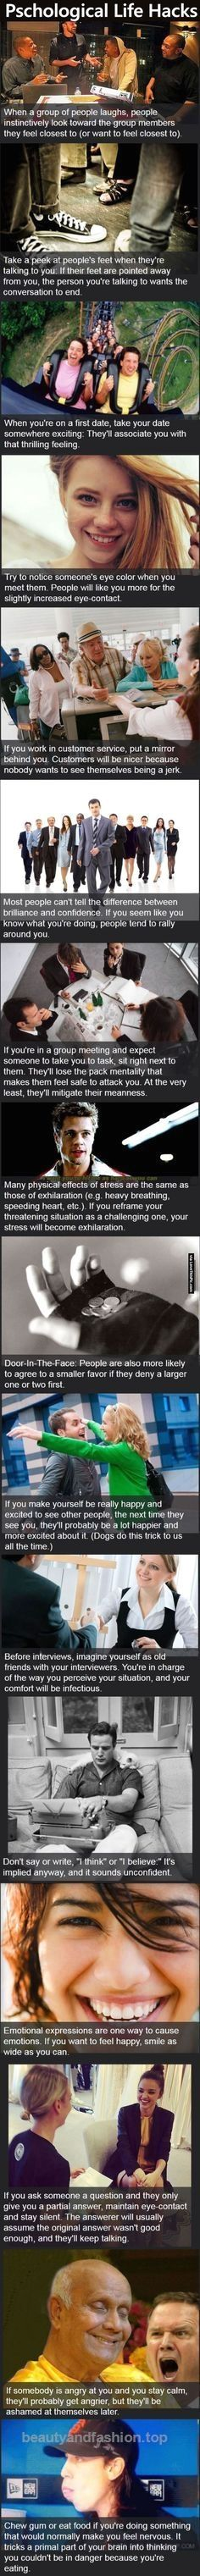 Psychological Life Hacks Pictures, Photos, and Images for Facebook, Tumblr, Pint…   http://www.beautyandfashion.top/2017/08/05/psychological-life-hacks-pictures-photos-and-images-for-facebook-tumblr-pint/